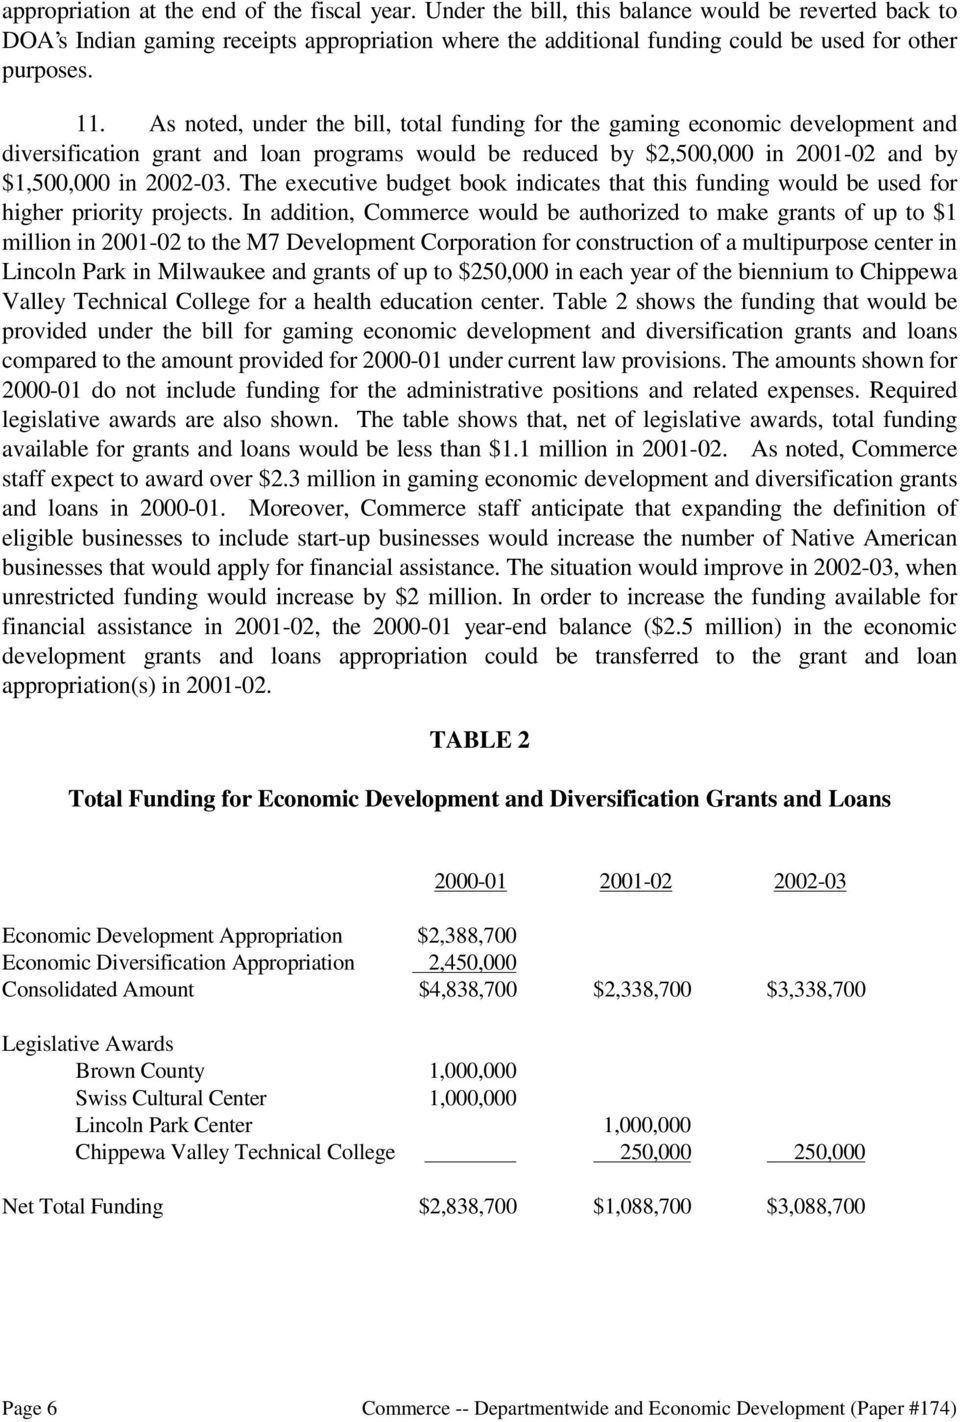 As noted, under the bill, total funding for the gaming economic development and diversification grant and loan programs would be reduced by $2,500,000 in 2001-02 and by $1,500,000 in 2002-03.